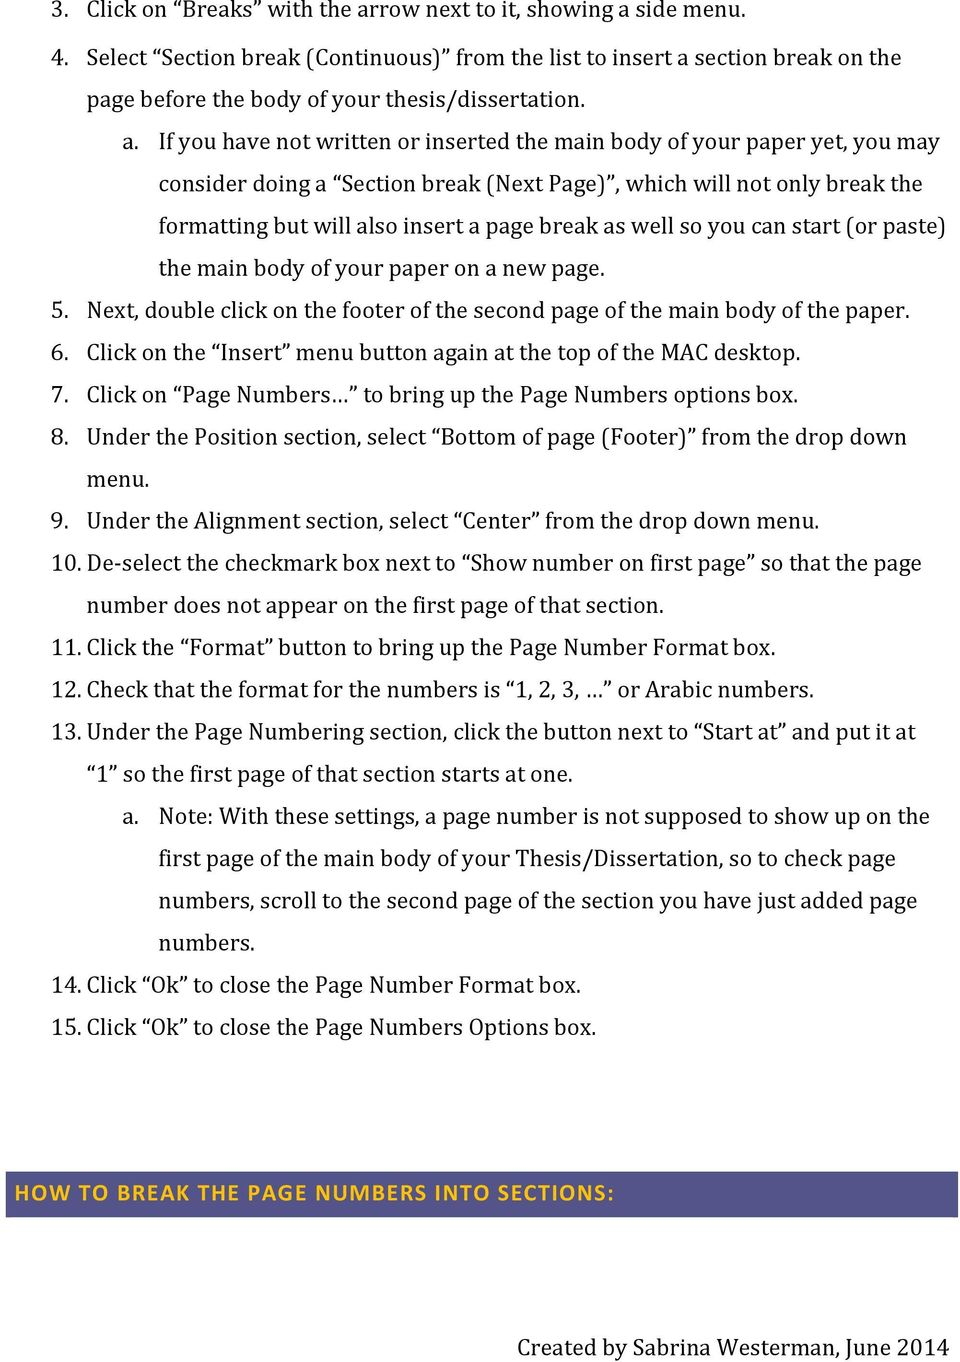 as well so you can start (or paste) the main body of your paper on a new page. 5. Next, double click on the footer of the second page of the main body of the paper. 6.